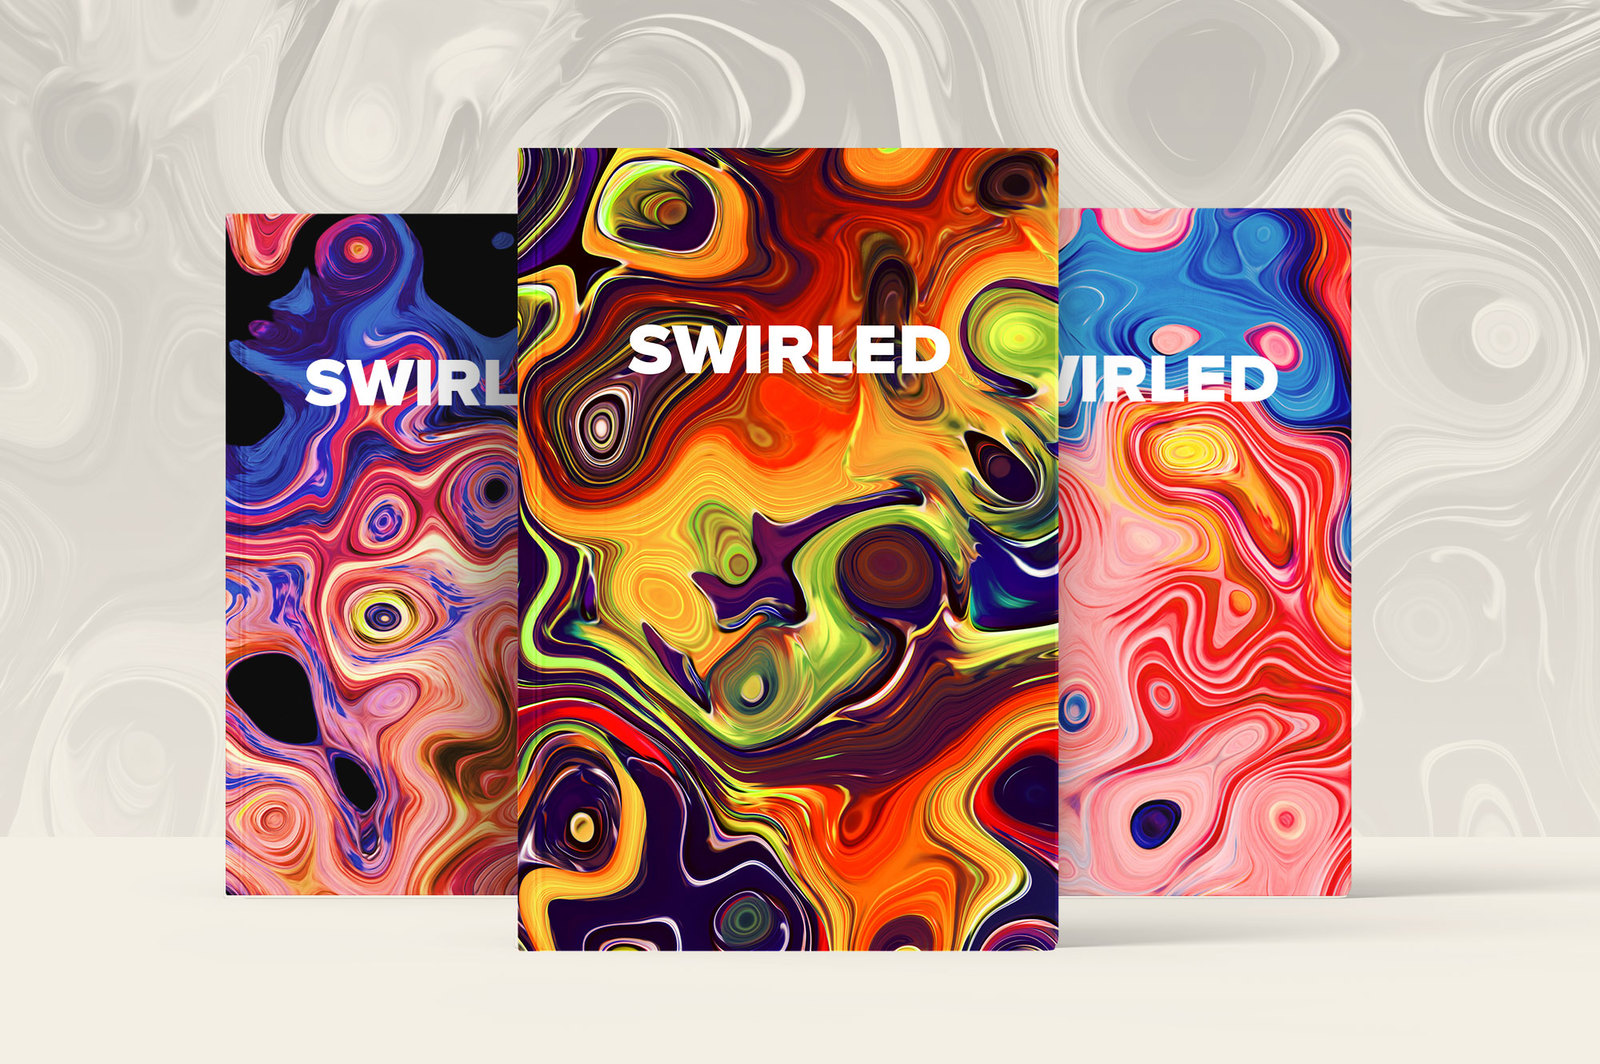 Swirled, Vol. 2: 15 Abstract Marble Textures